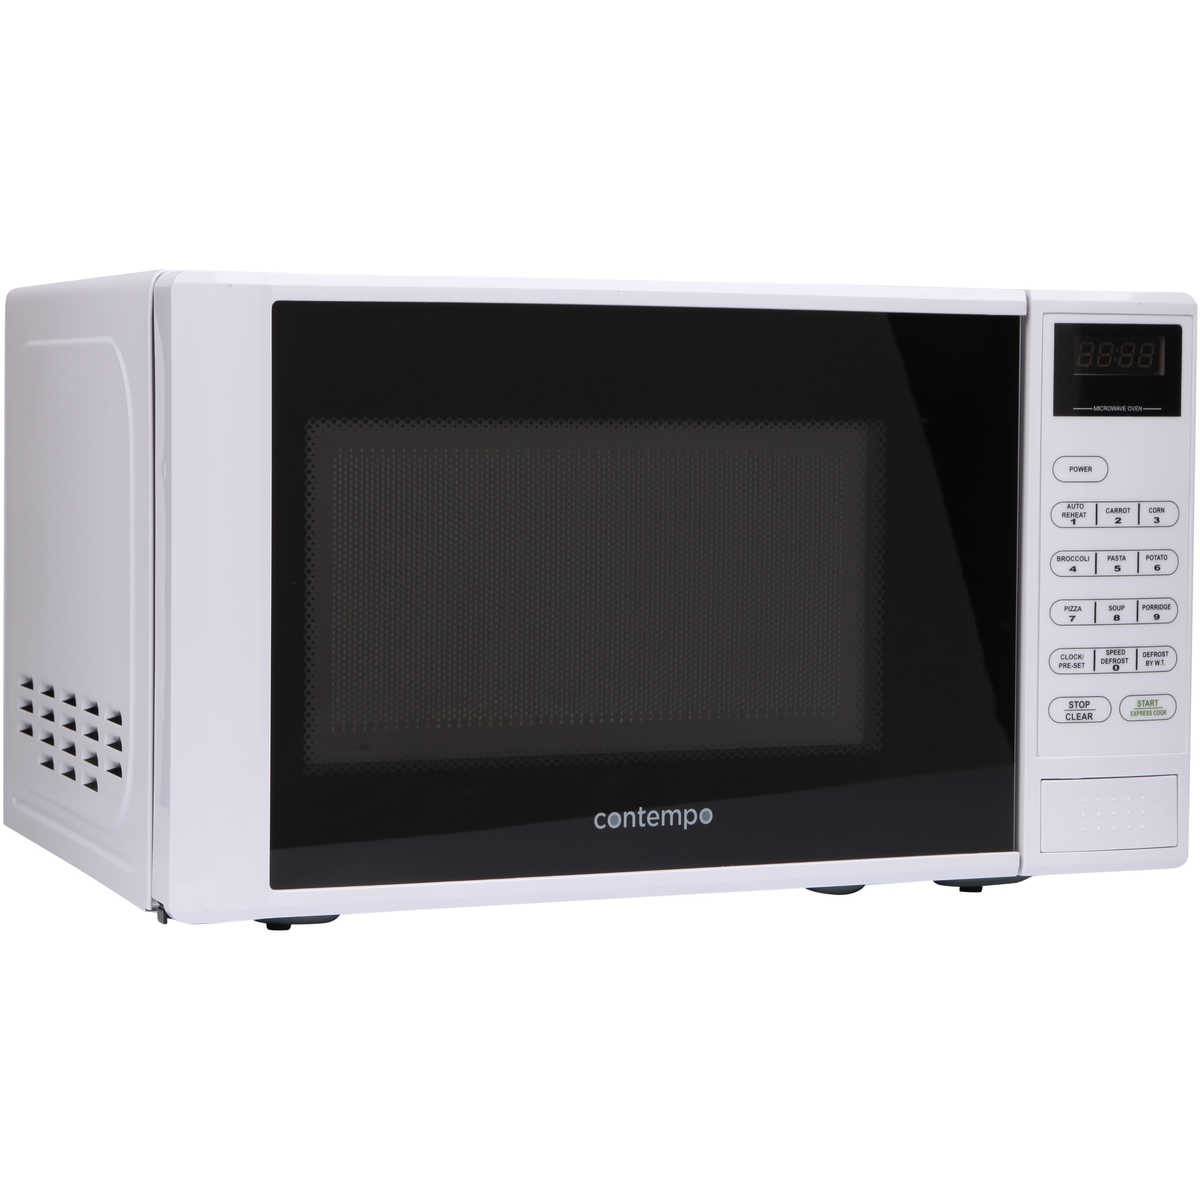 Big W Microwaves Contempo Compact Digital Microwave 18l Big W